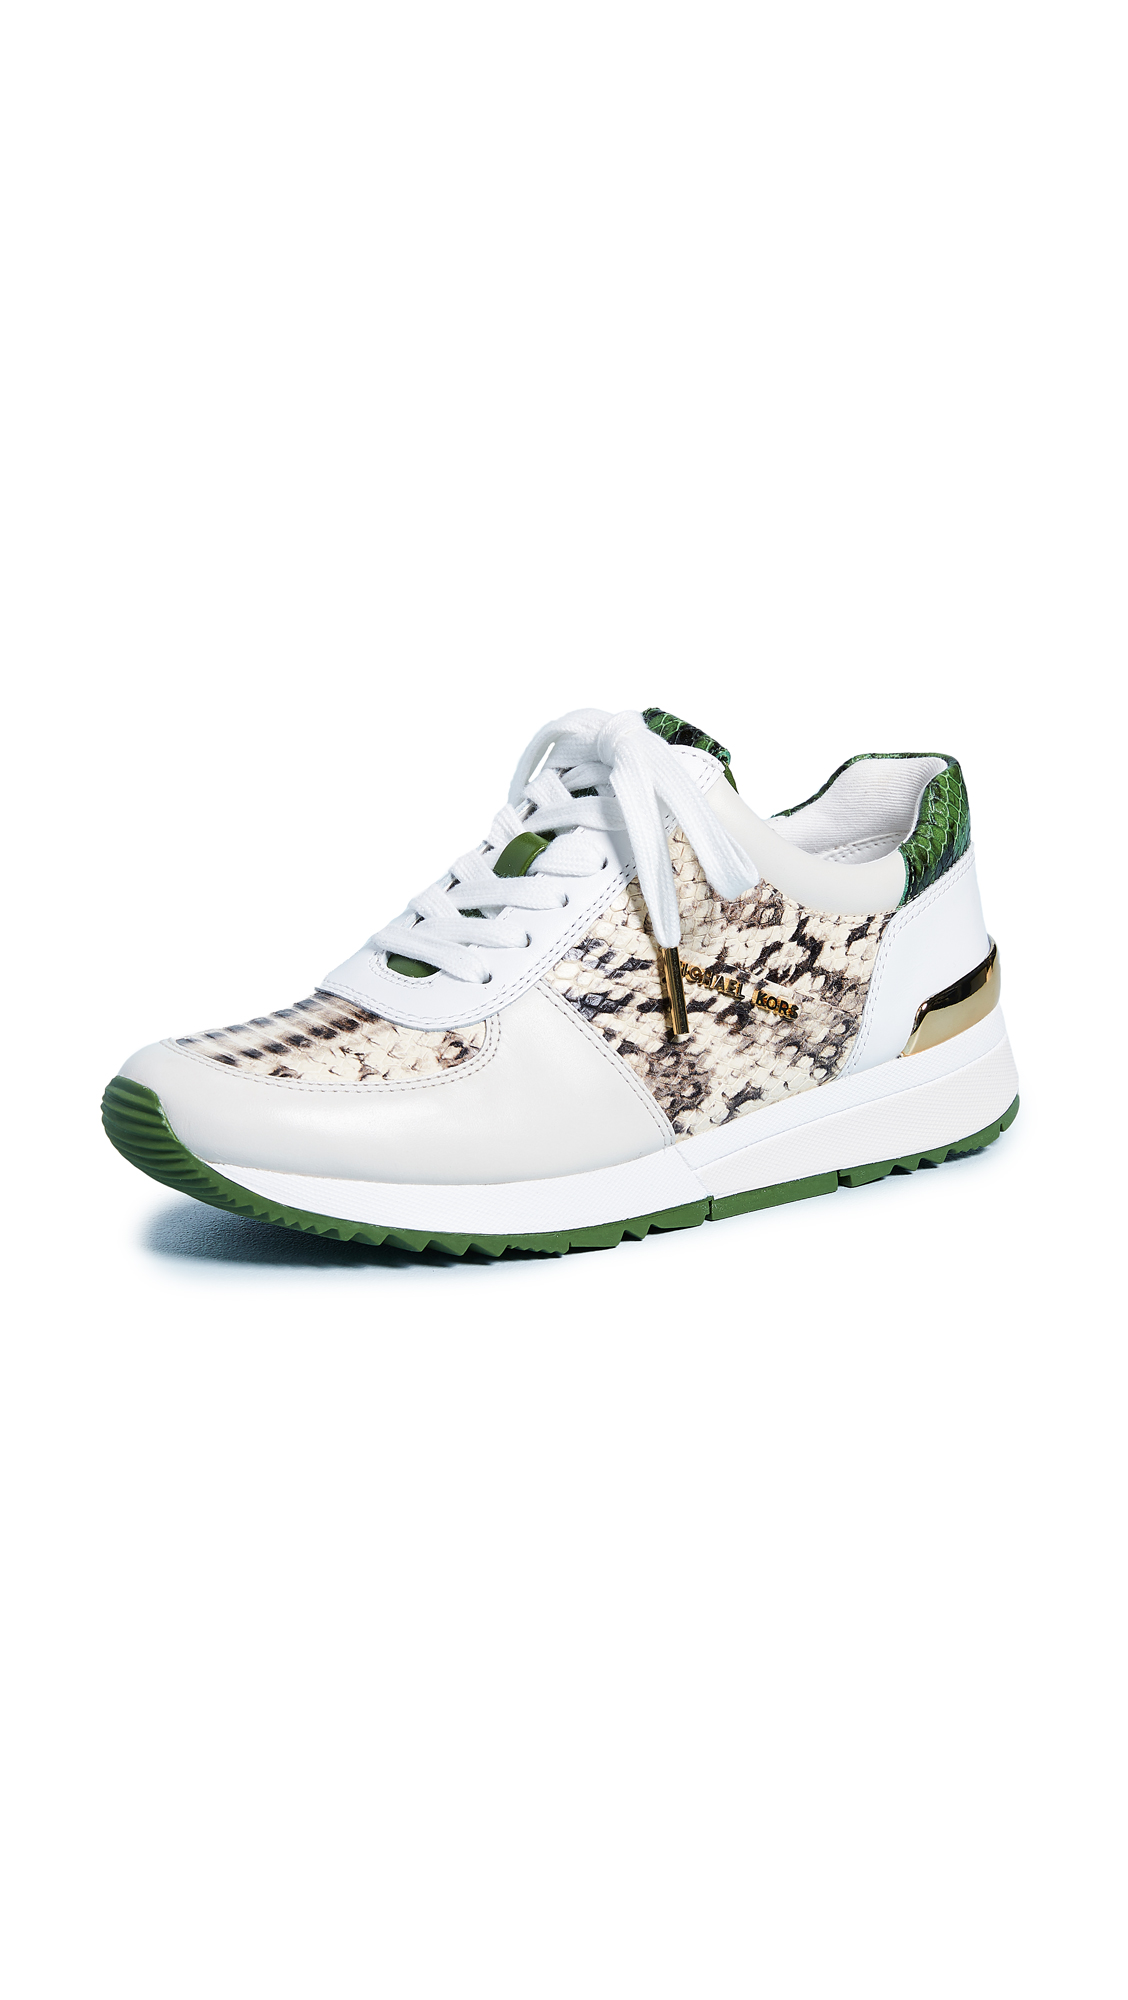 MICHAEL Michael Kors Allie Trainers - Natural/Cream/Green